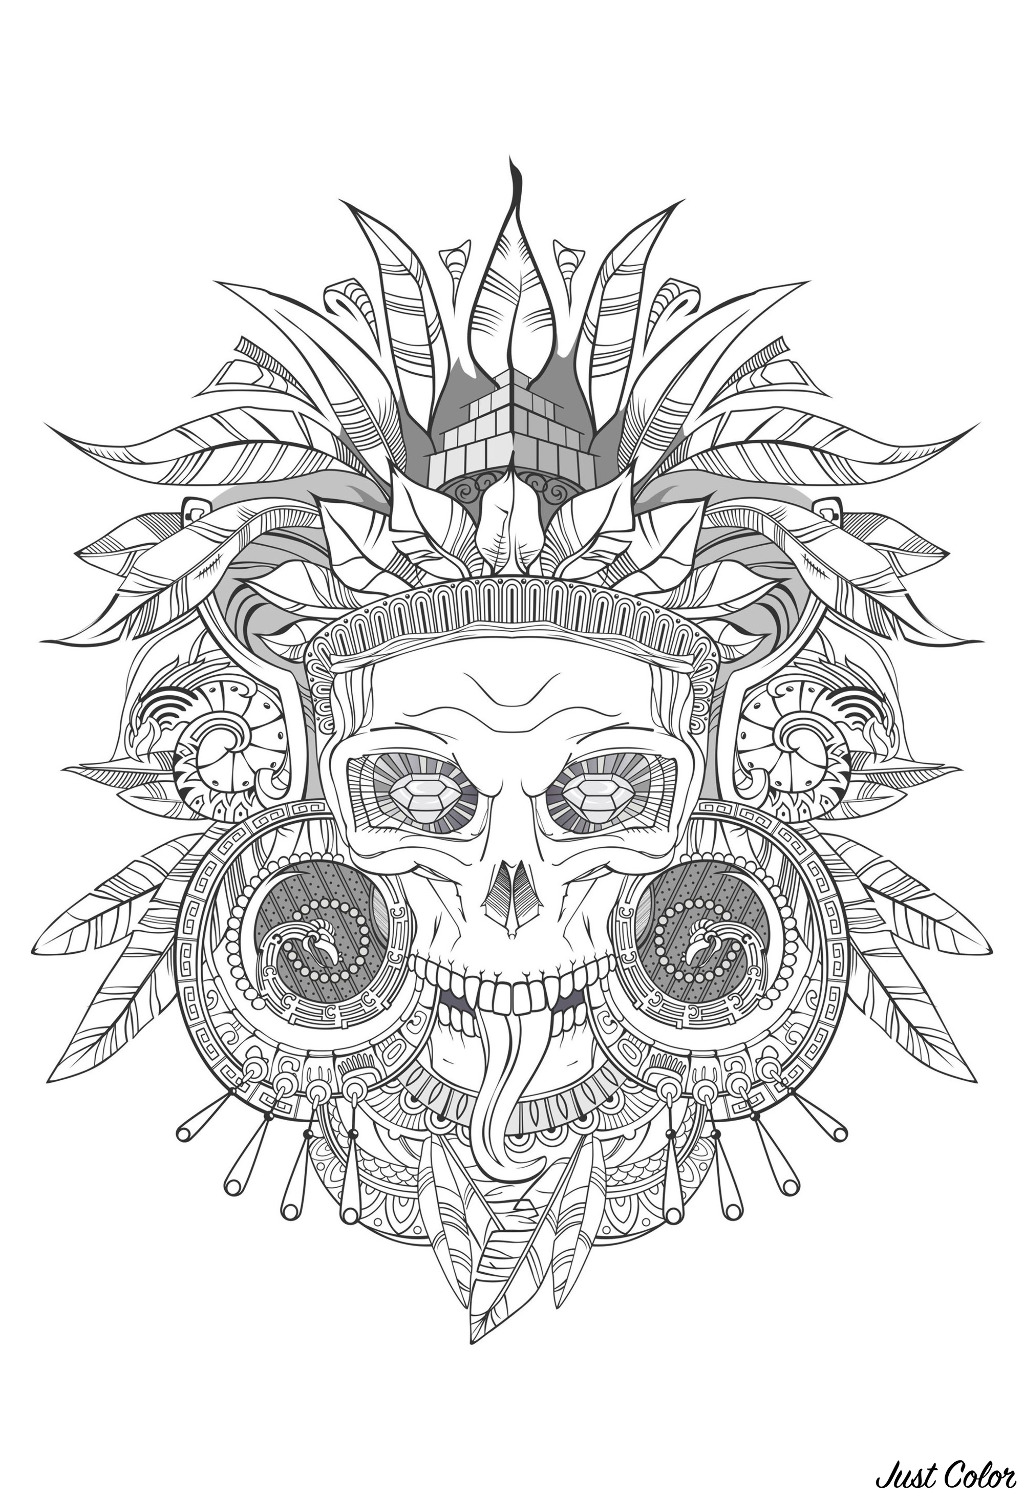 Incredible Aztec skull - with shades of gray